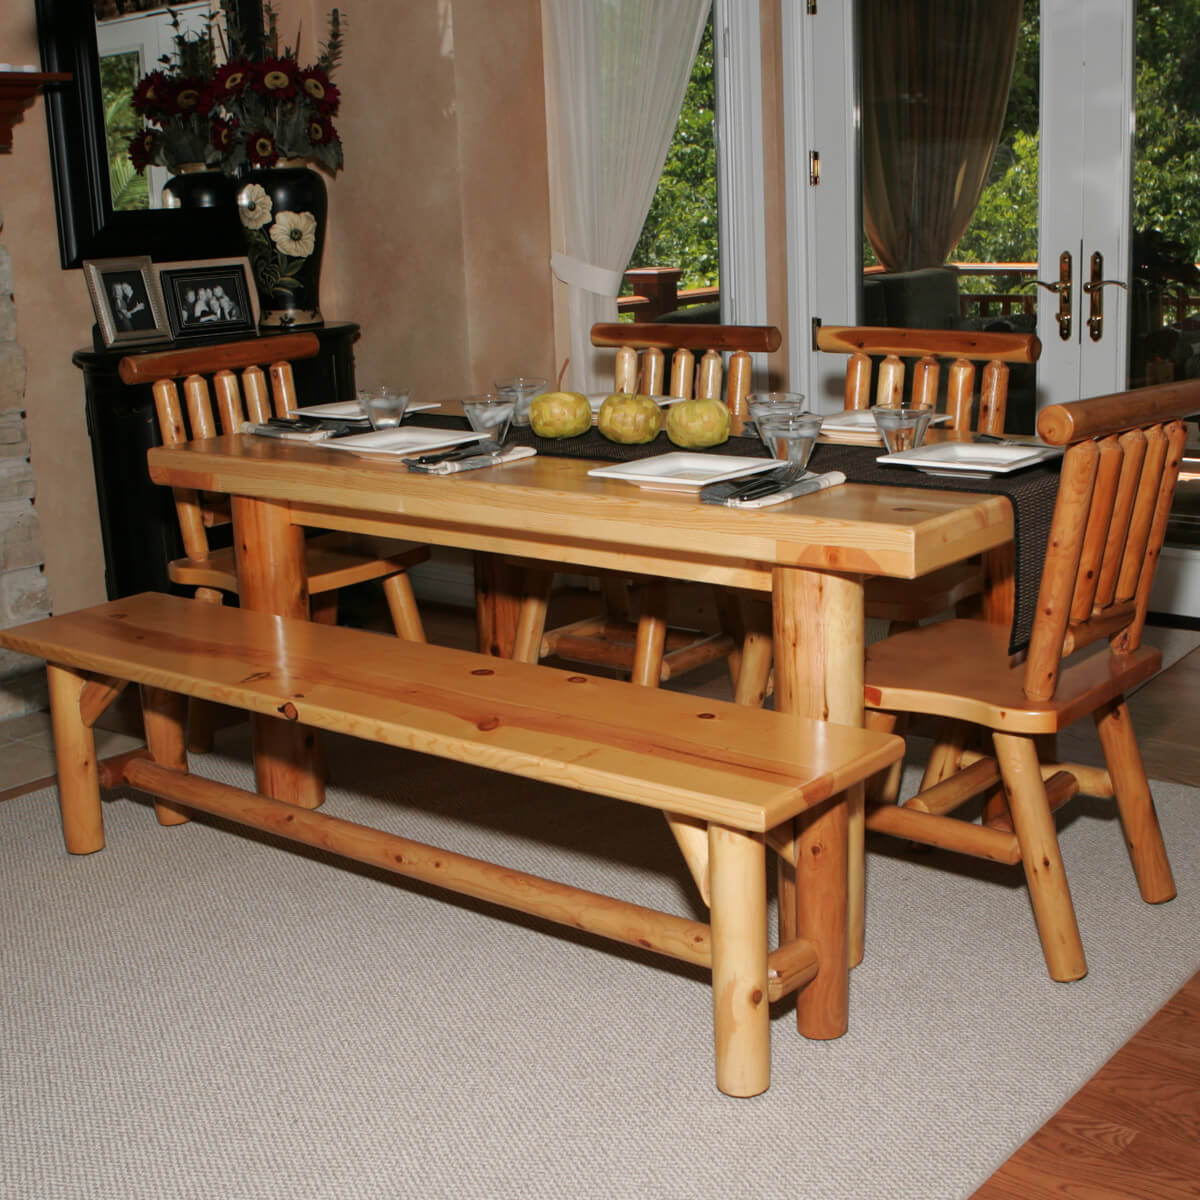 dining room sets bench seating bench for kitchen table Here s a dining table set with bench perfect for the log cabin or home Seating